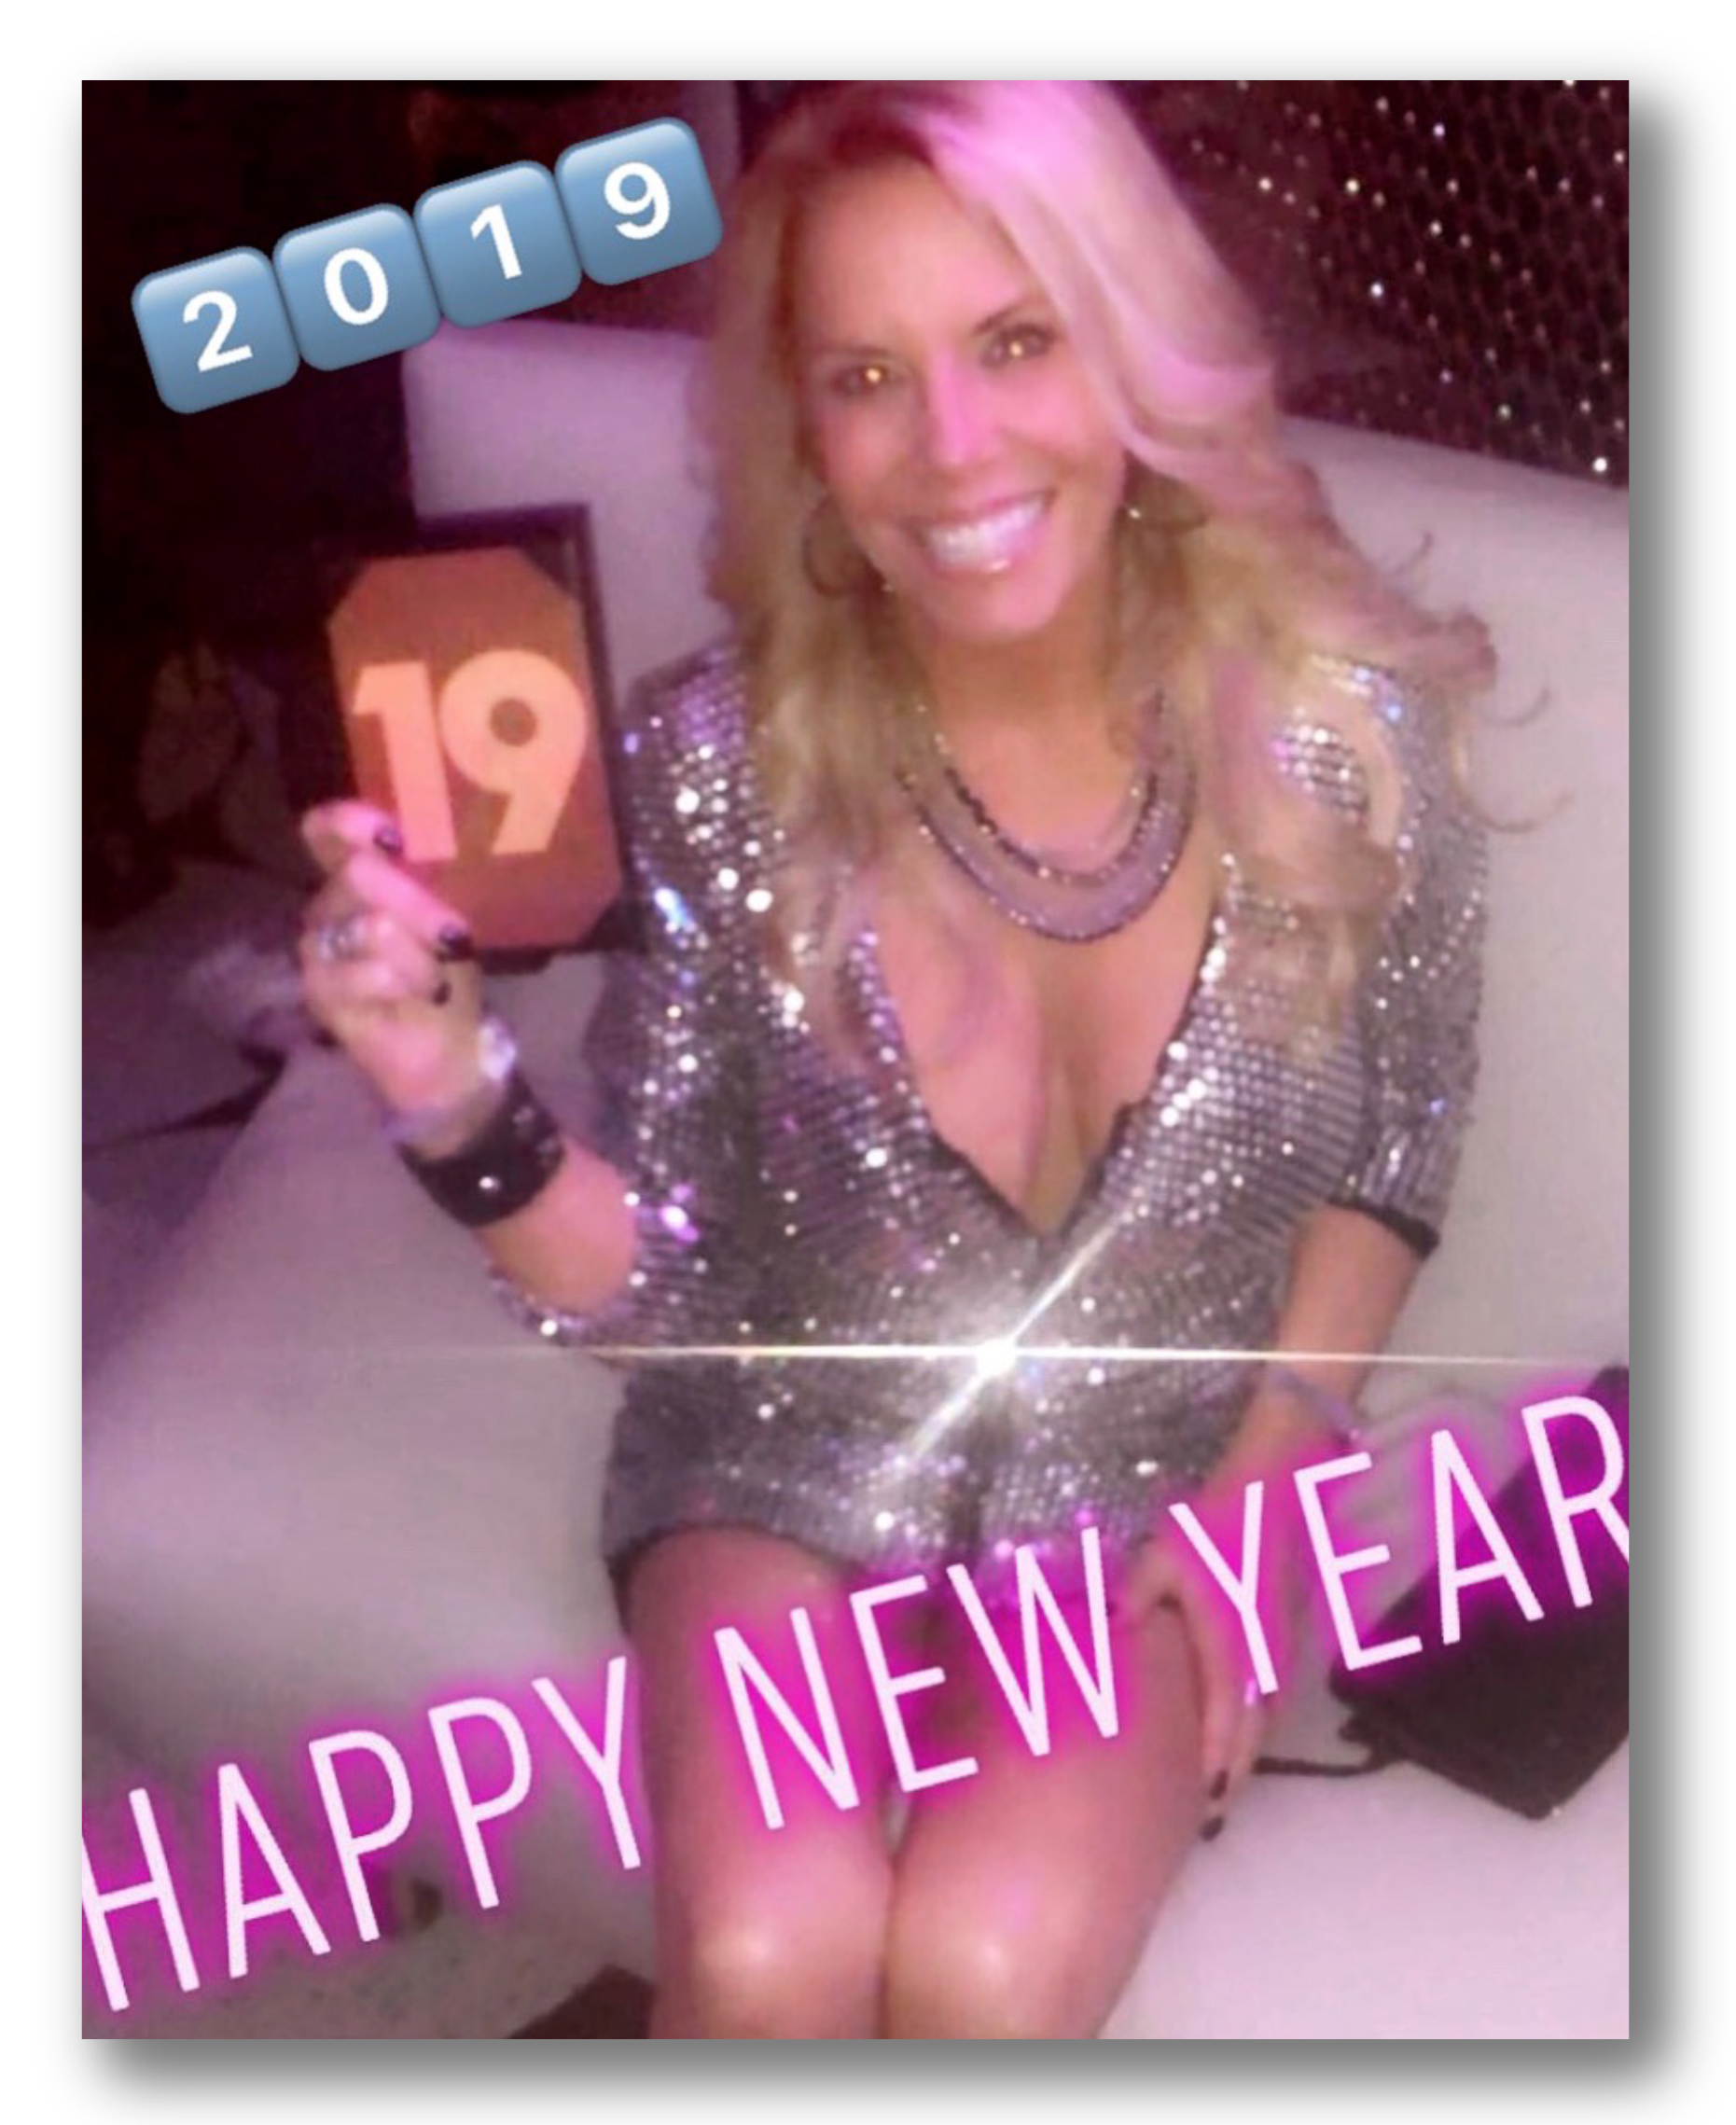 Happy New Year 2019 Jo Antovoni